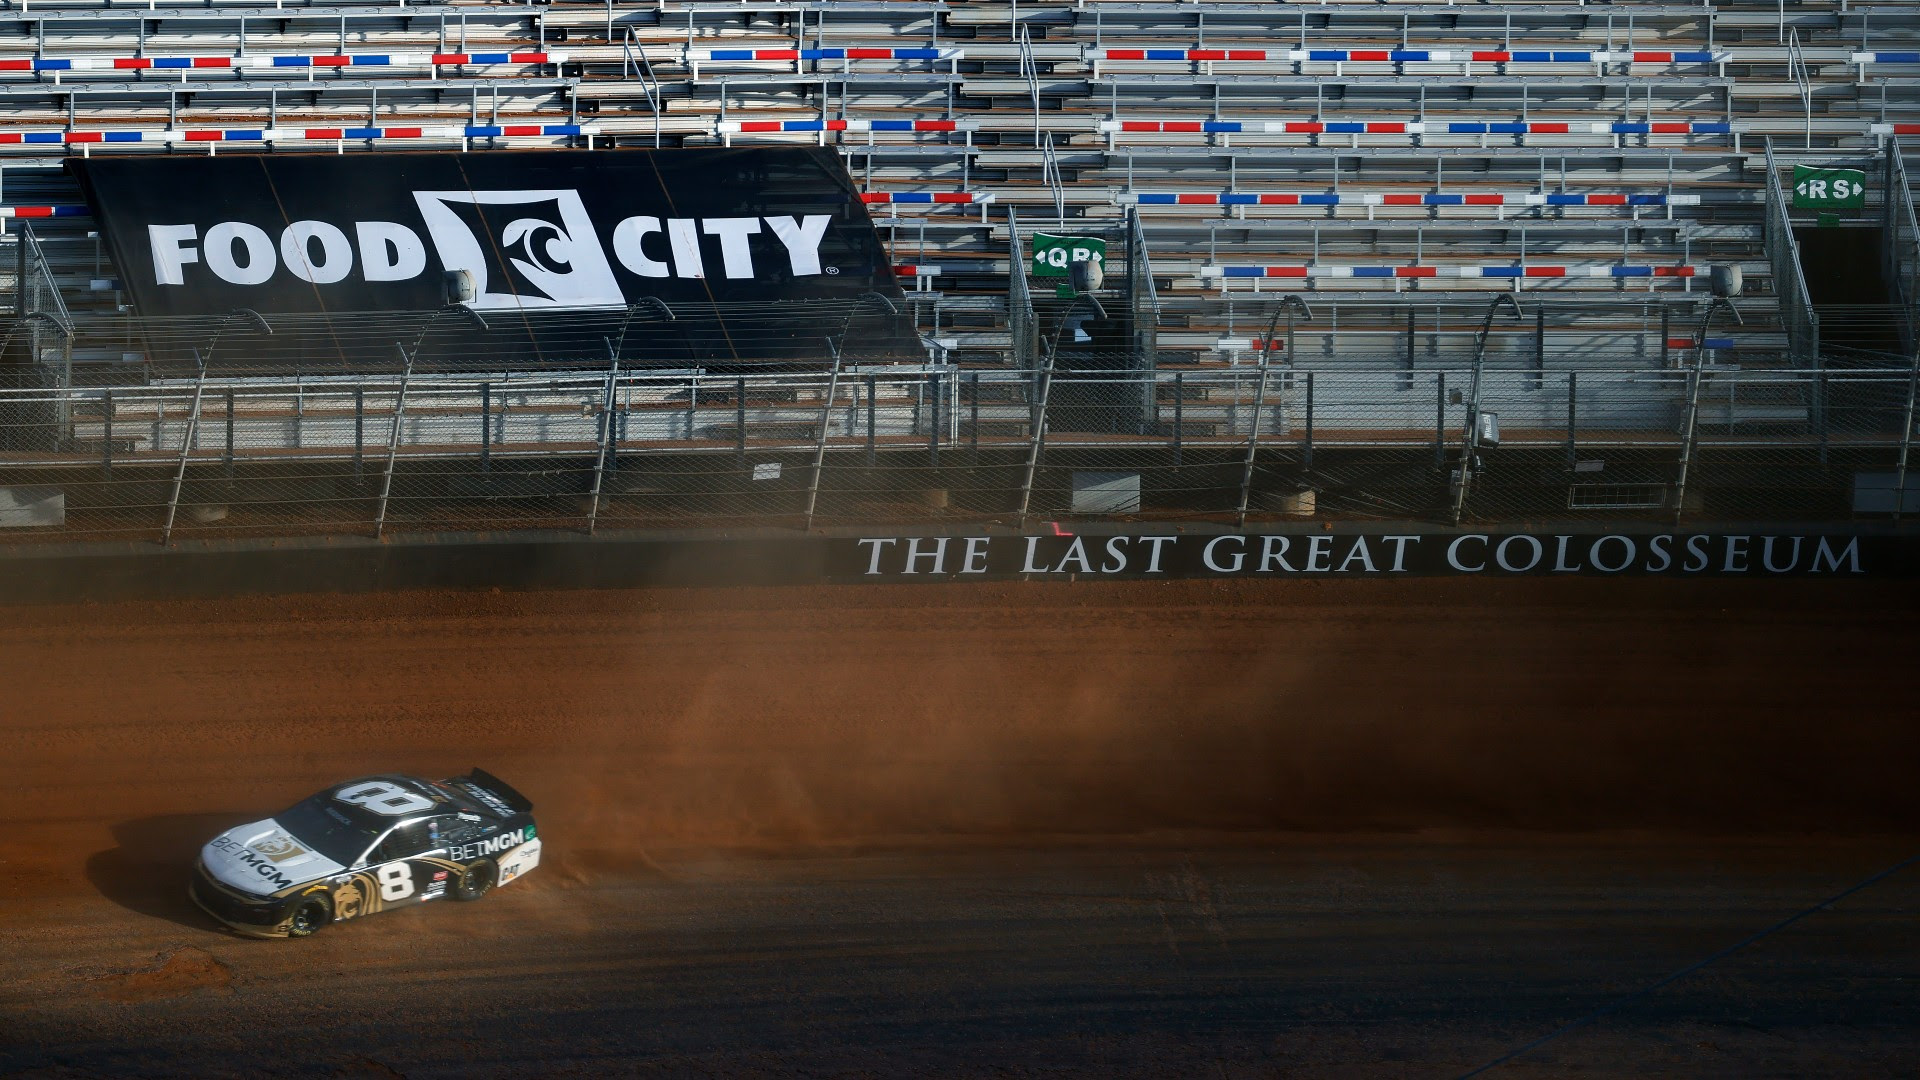 NASCAR at Bristol results: Joey Logano wins chaotic Food City Dirt Race